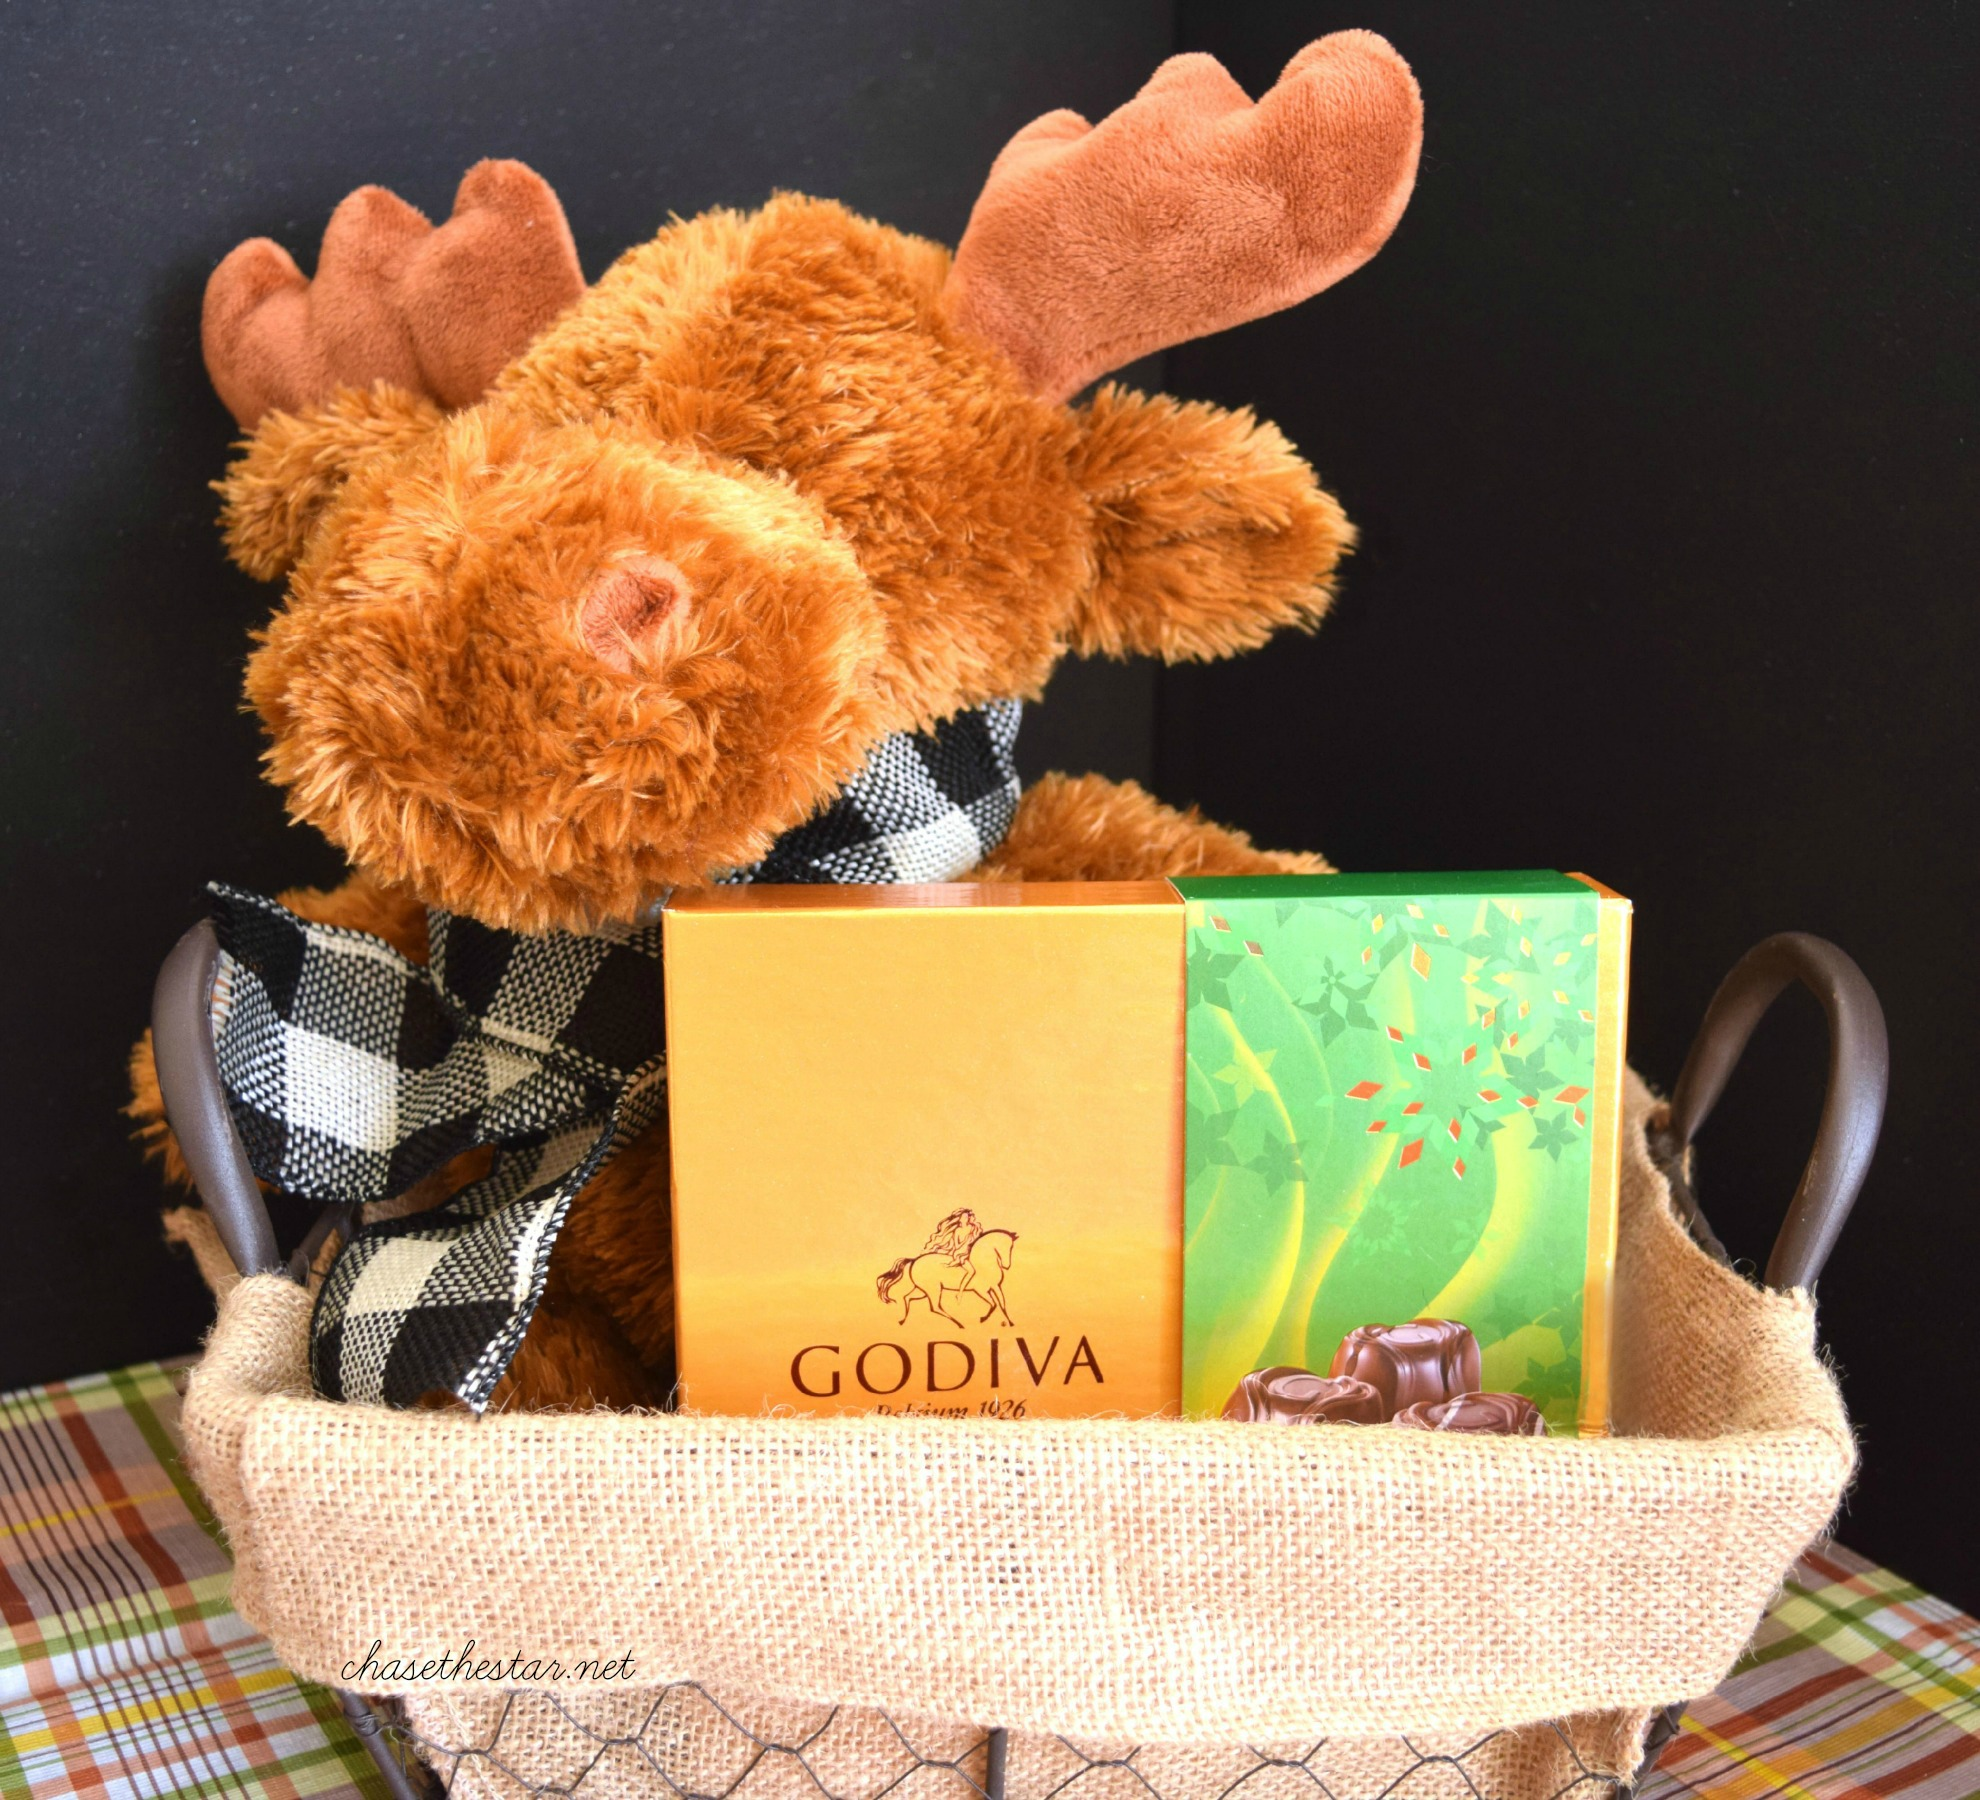 Give him a gift he'll love...Guys want chocolate too! #giveGODIVA